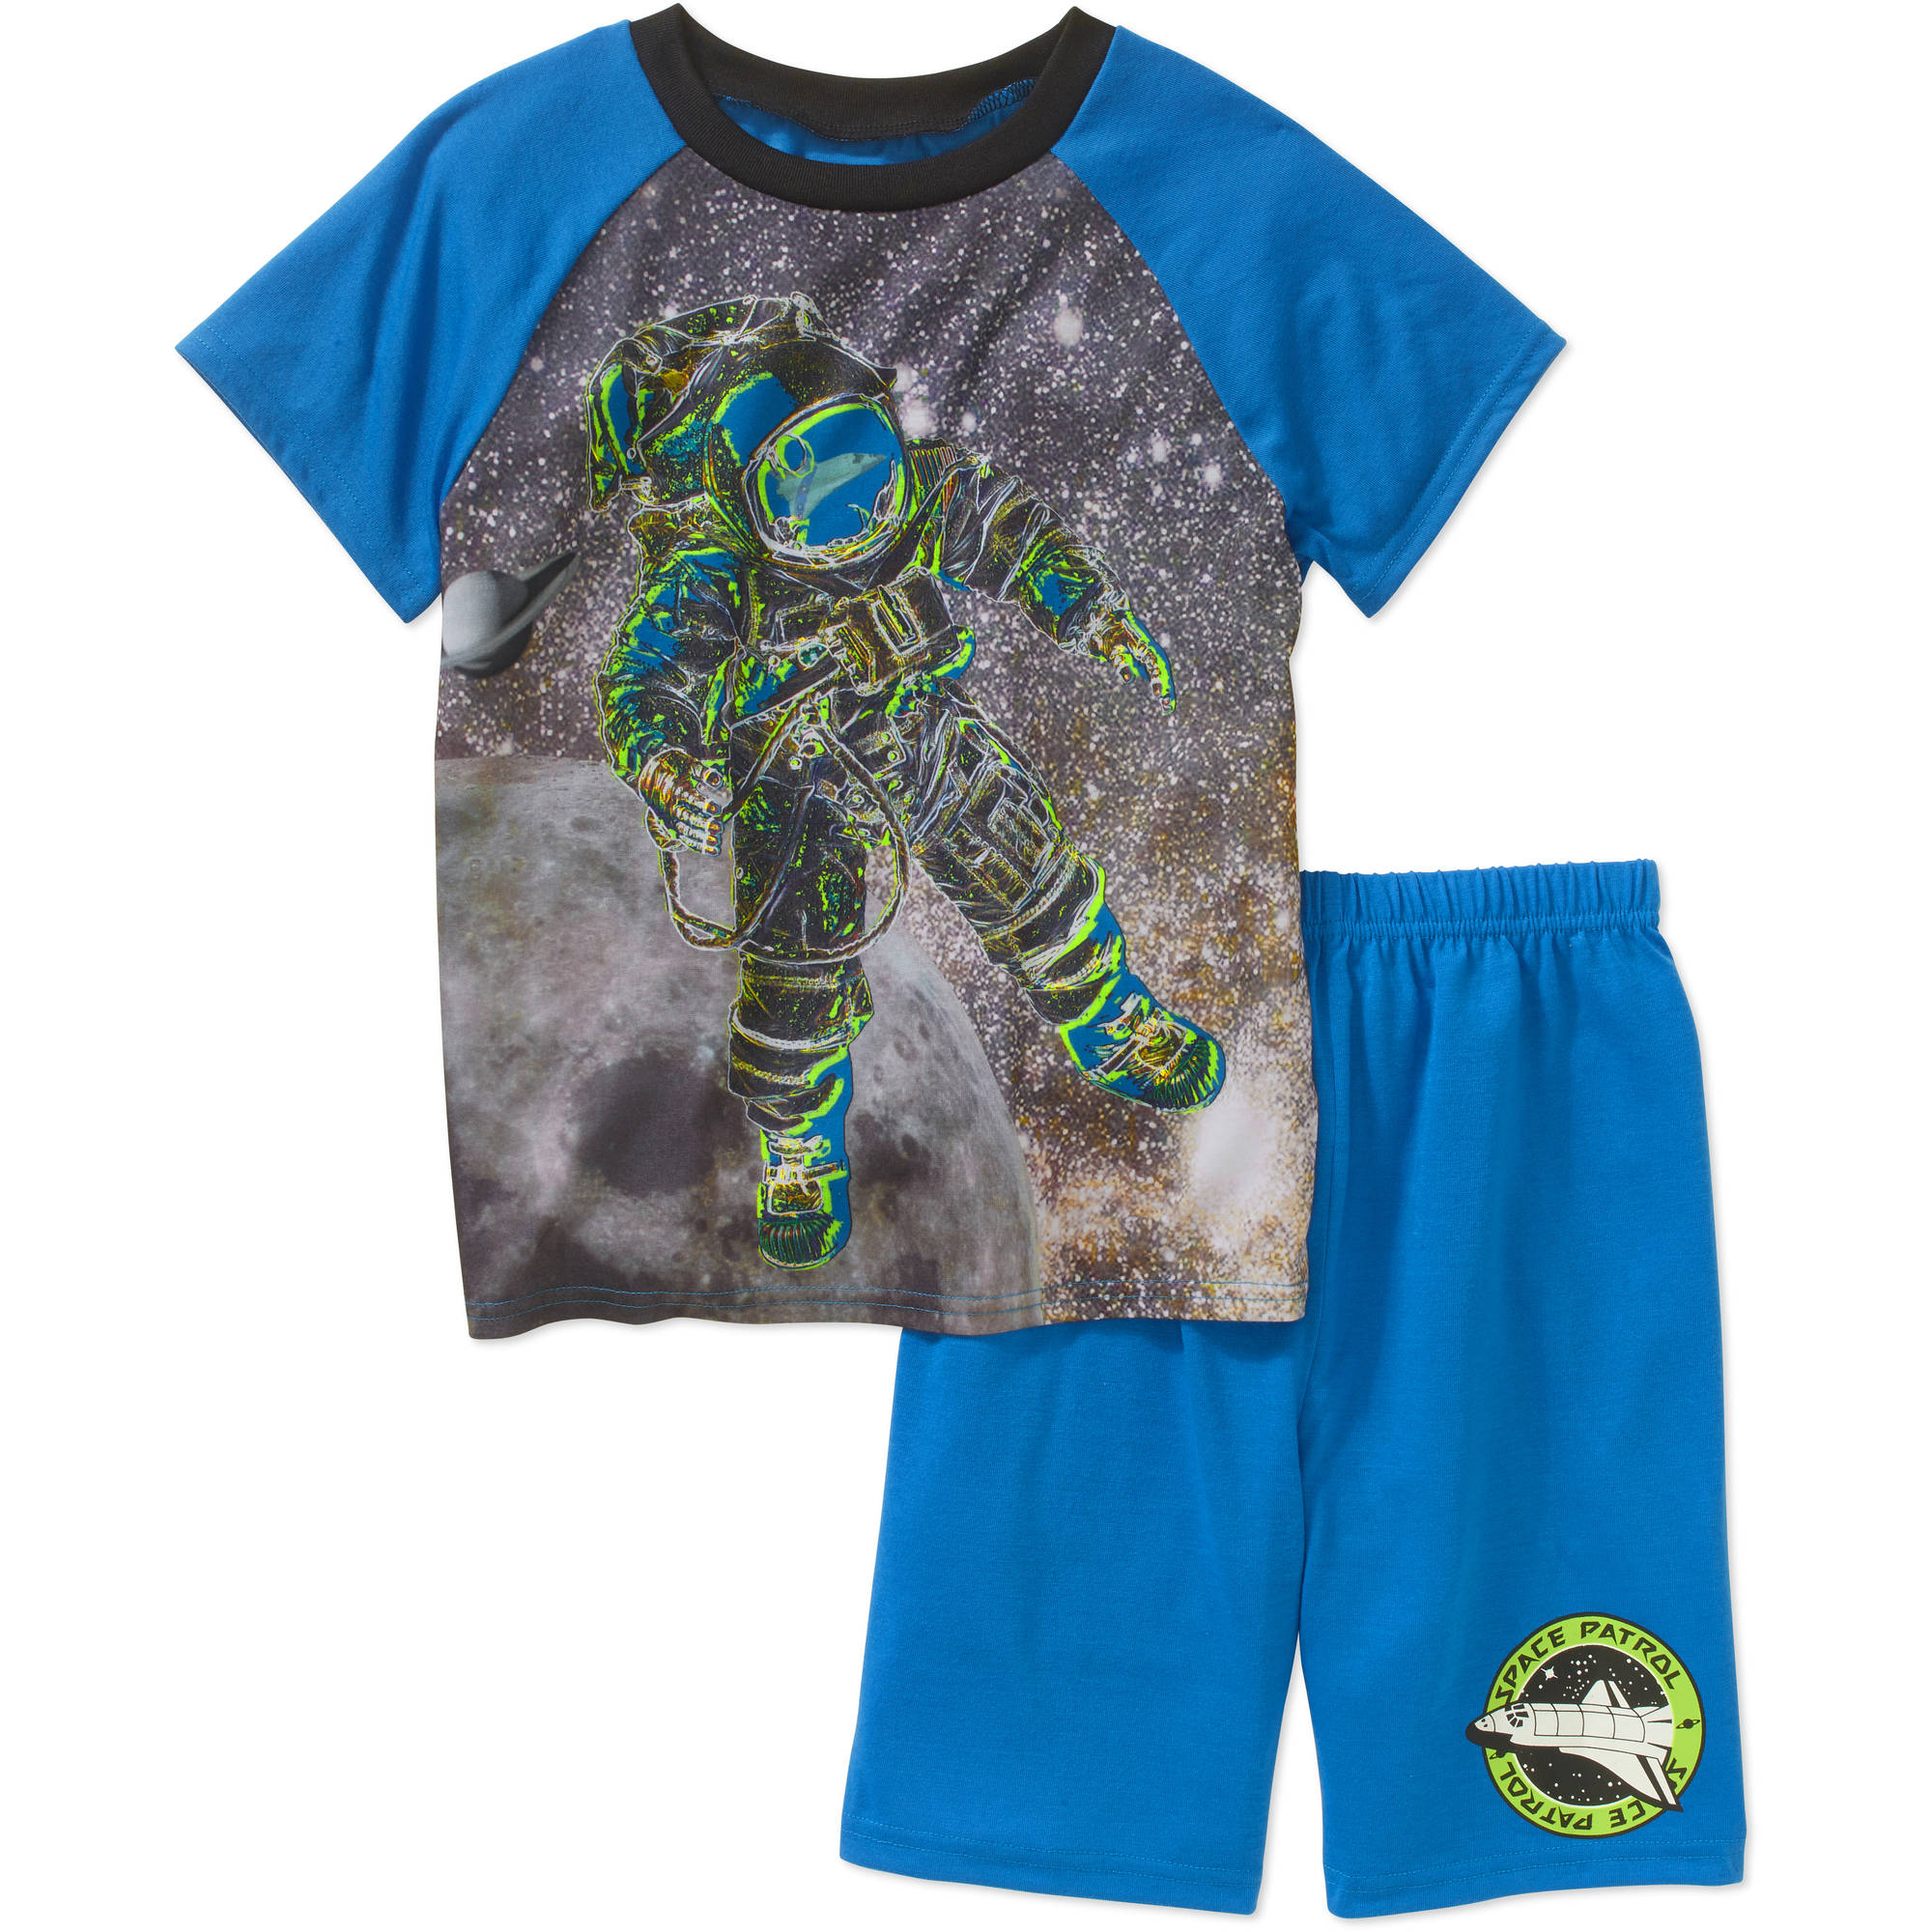 Boys' Clothing - Walmart.com